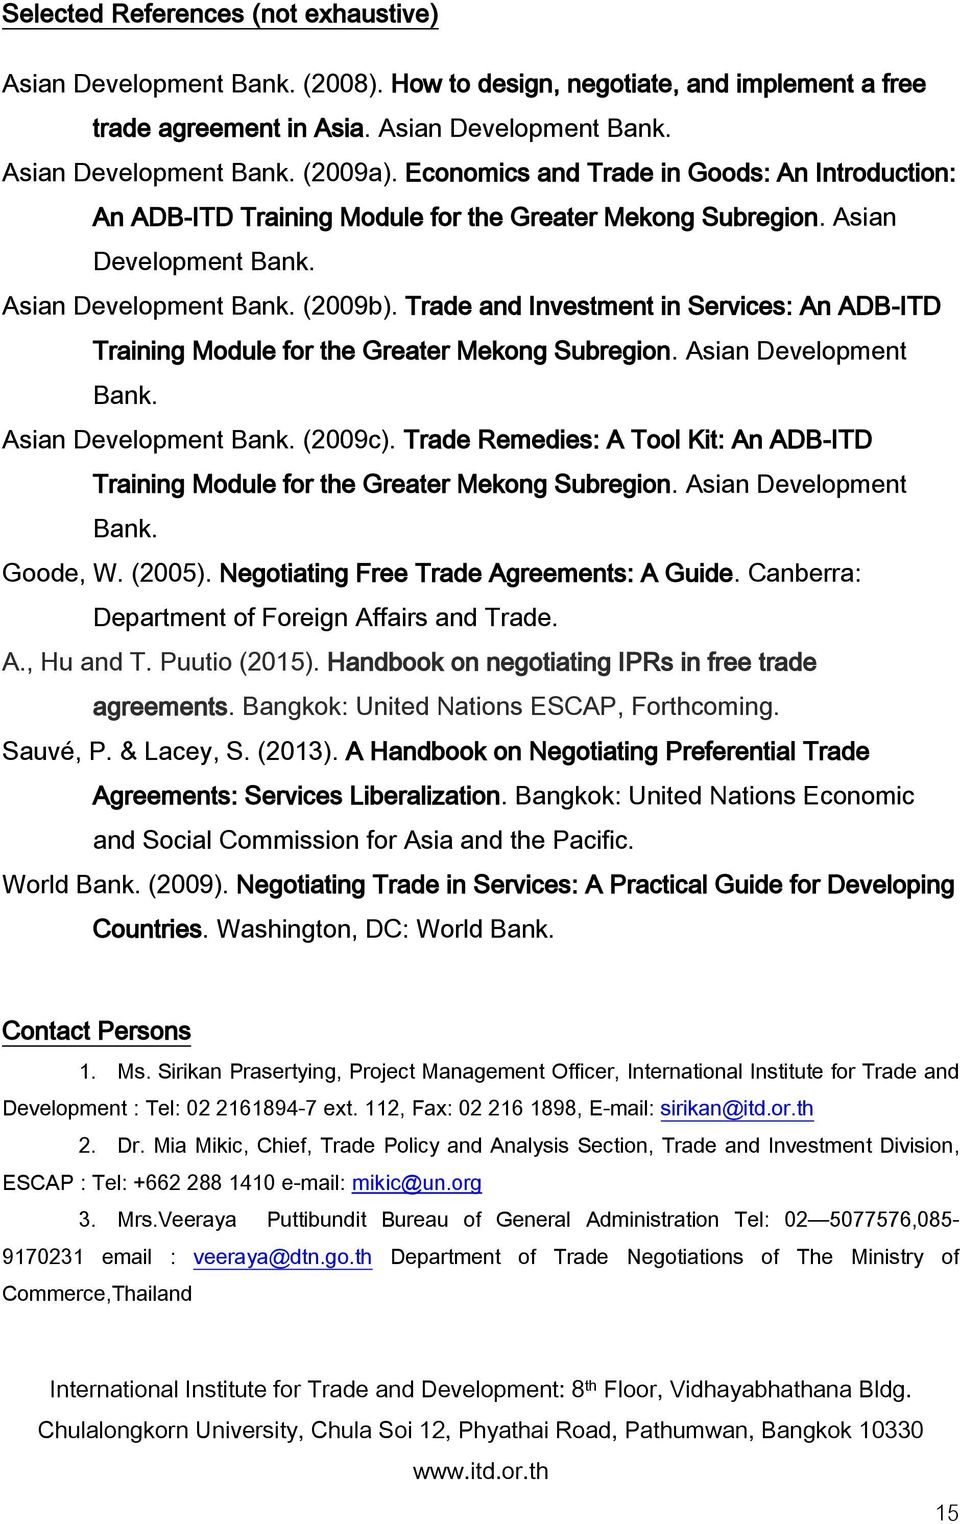 Trade and Investment in Services: An ADB-ITD Training Module for the Greater Mekong Subregion. Asian Development Bank. Asian Development Bank. (2009c).